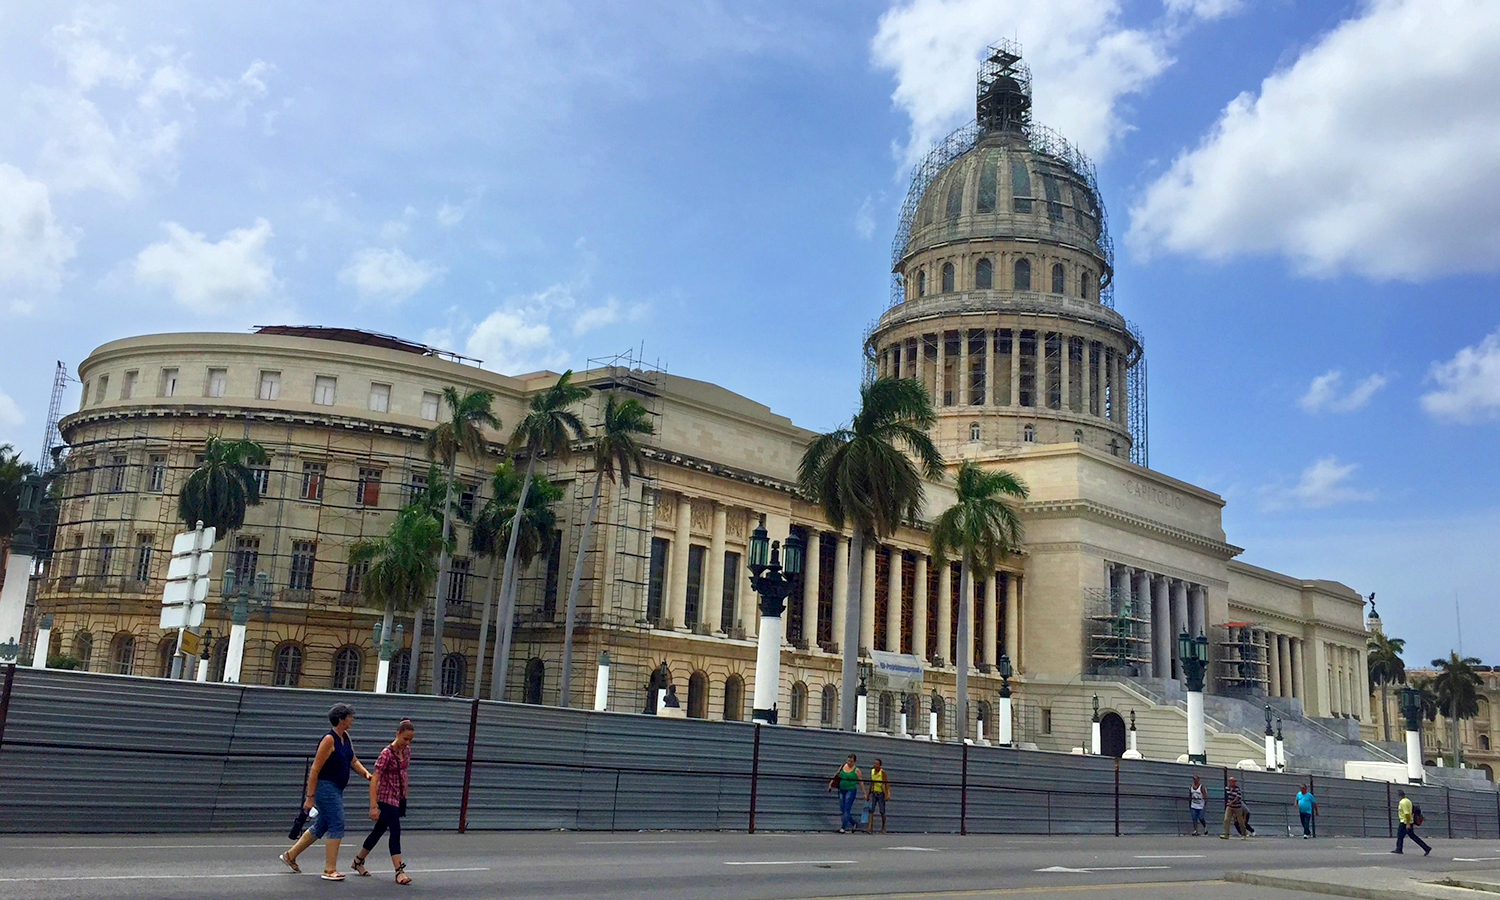 The capitol building in Old Havana.